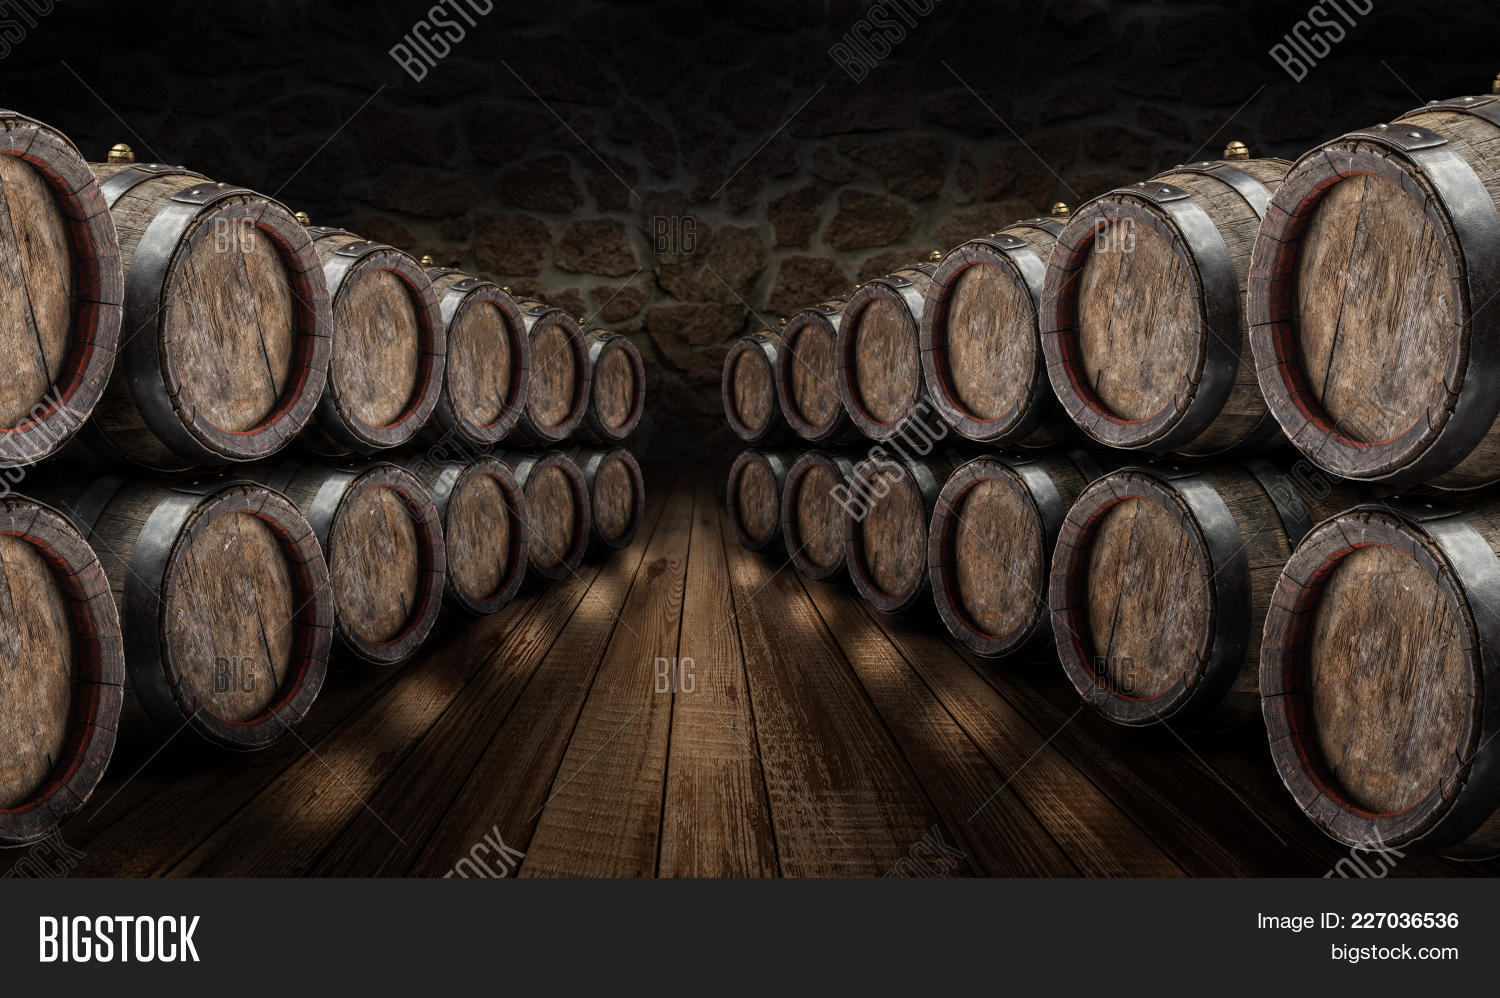 oak wine barrels. Oak Wine Barrels In The Cellar. Old Stone Wall At Background.